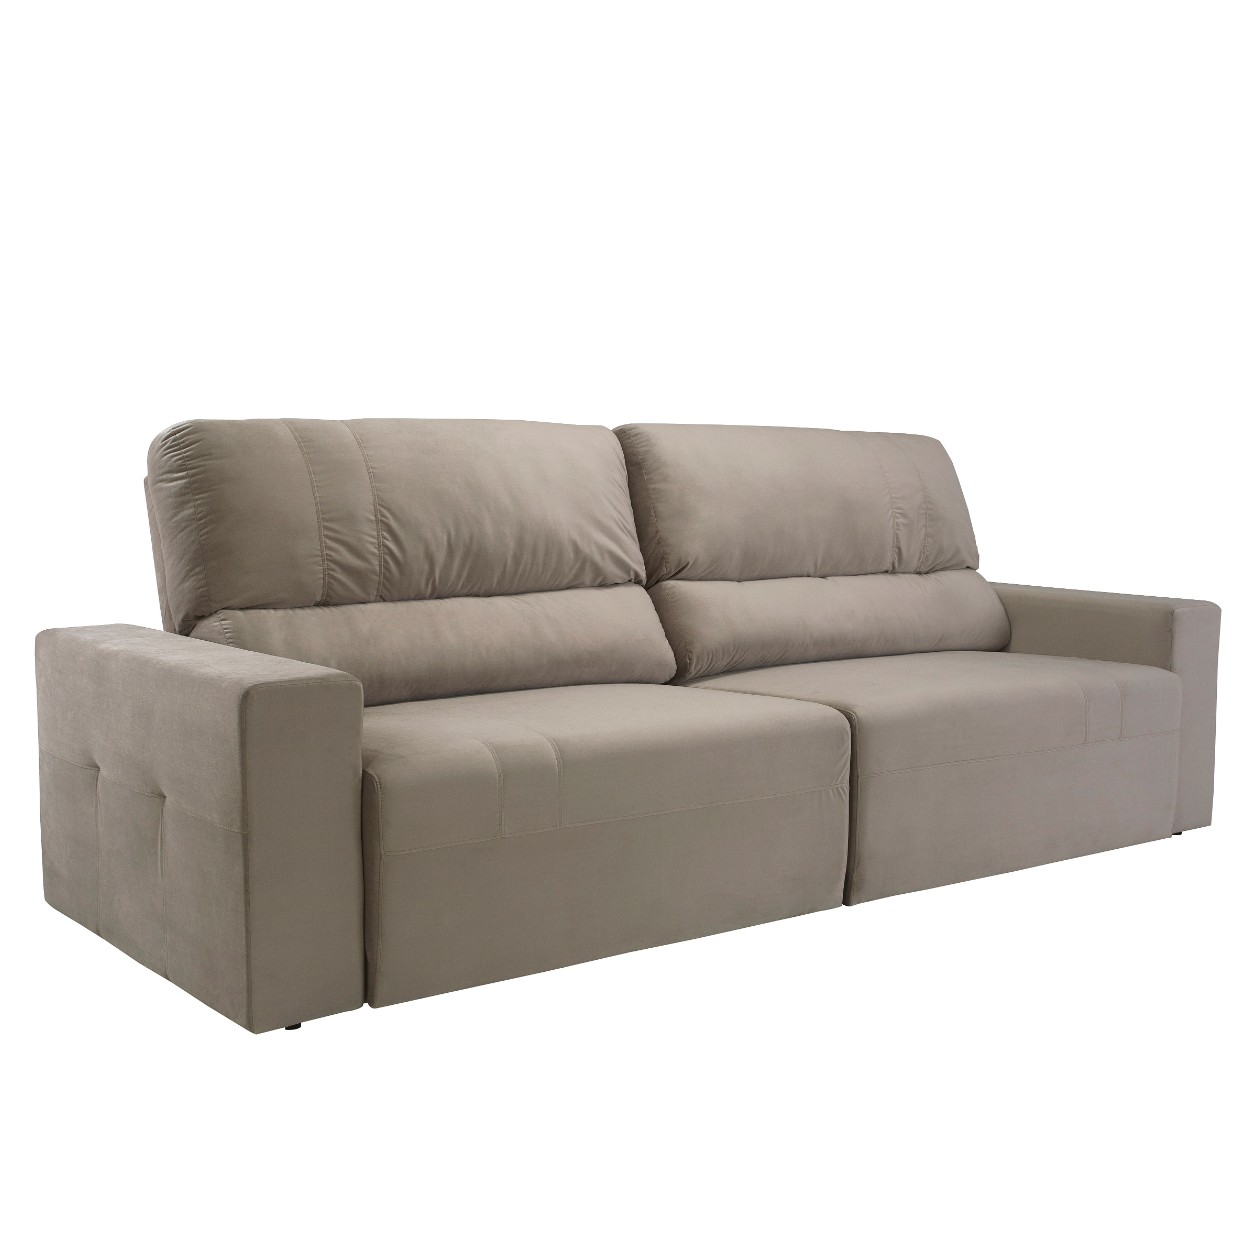 Sofa 4 Lugares Retratil Reclinavel Veludo Bege - Herval